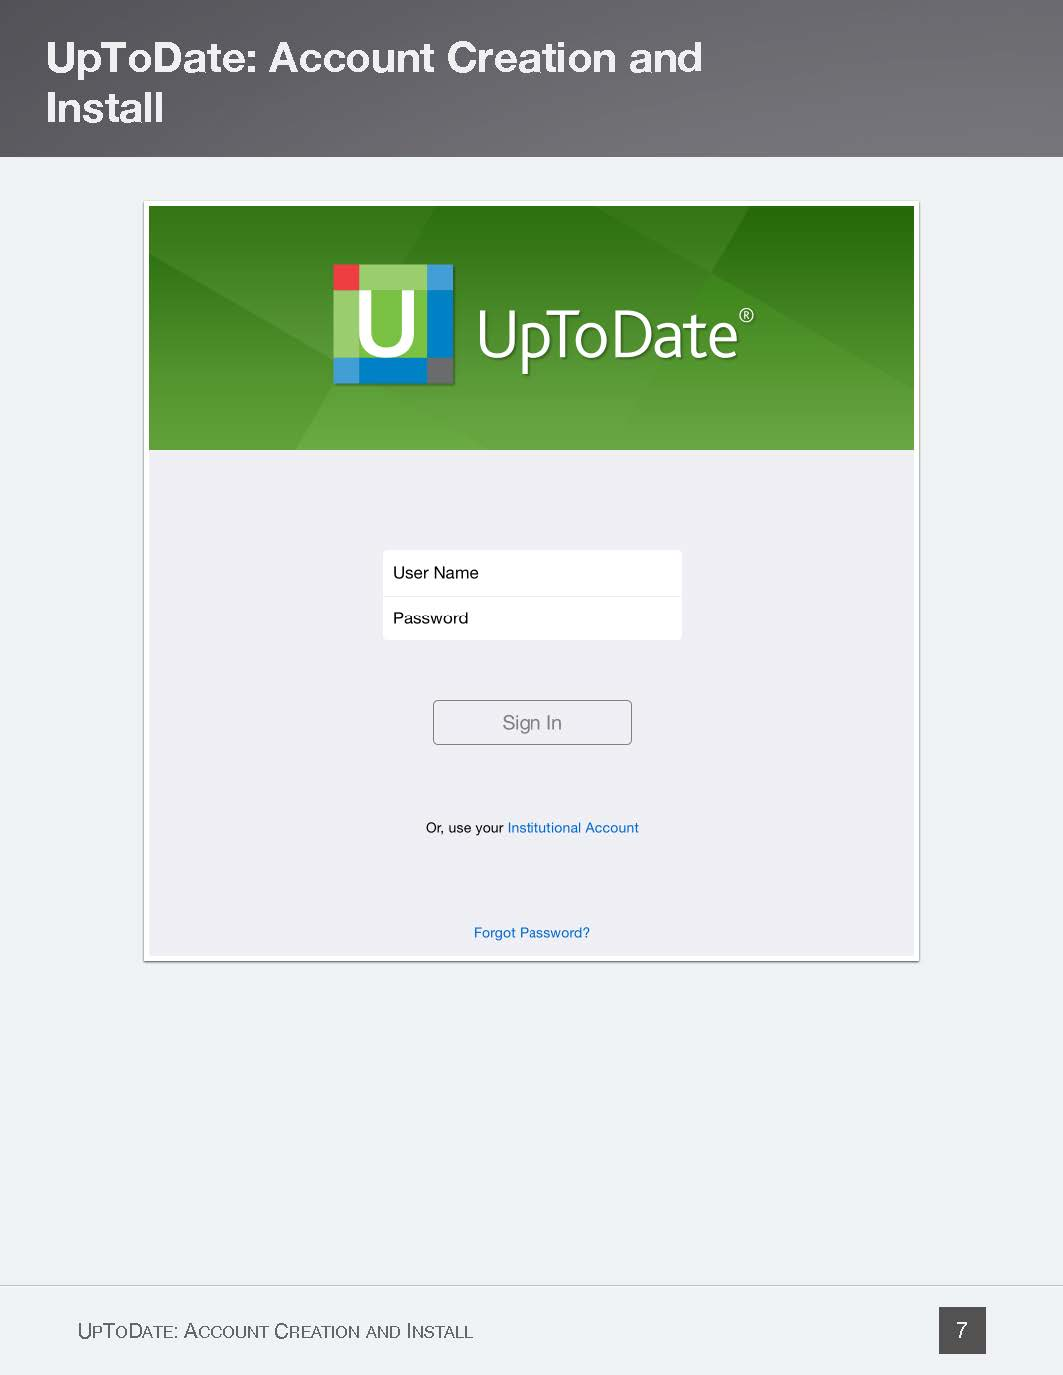 UpToDate app login screenshot - Page 7